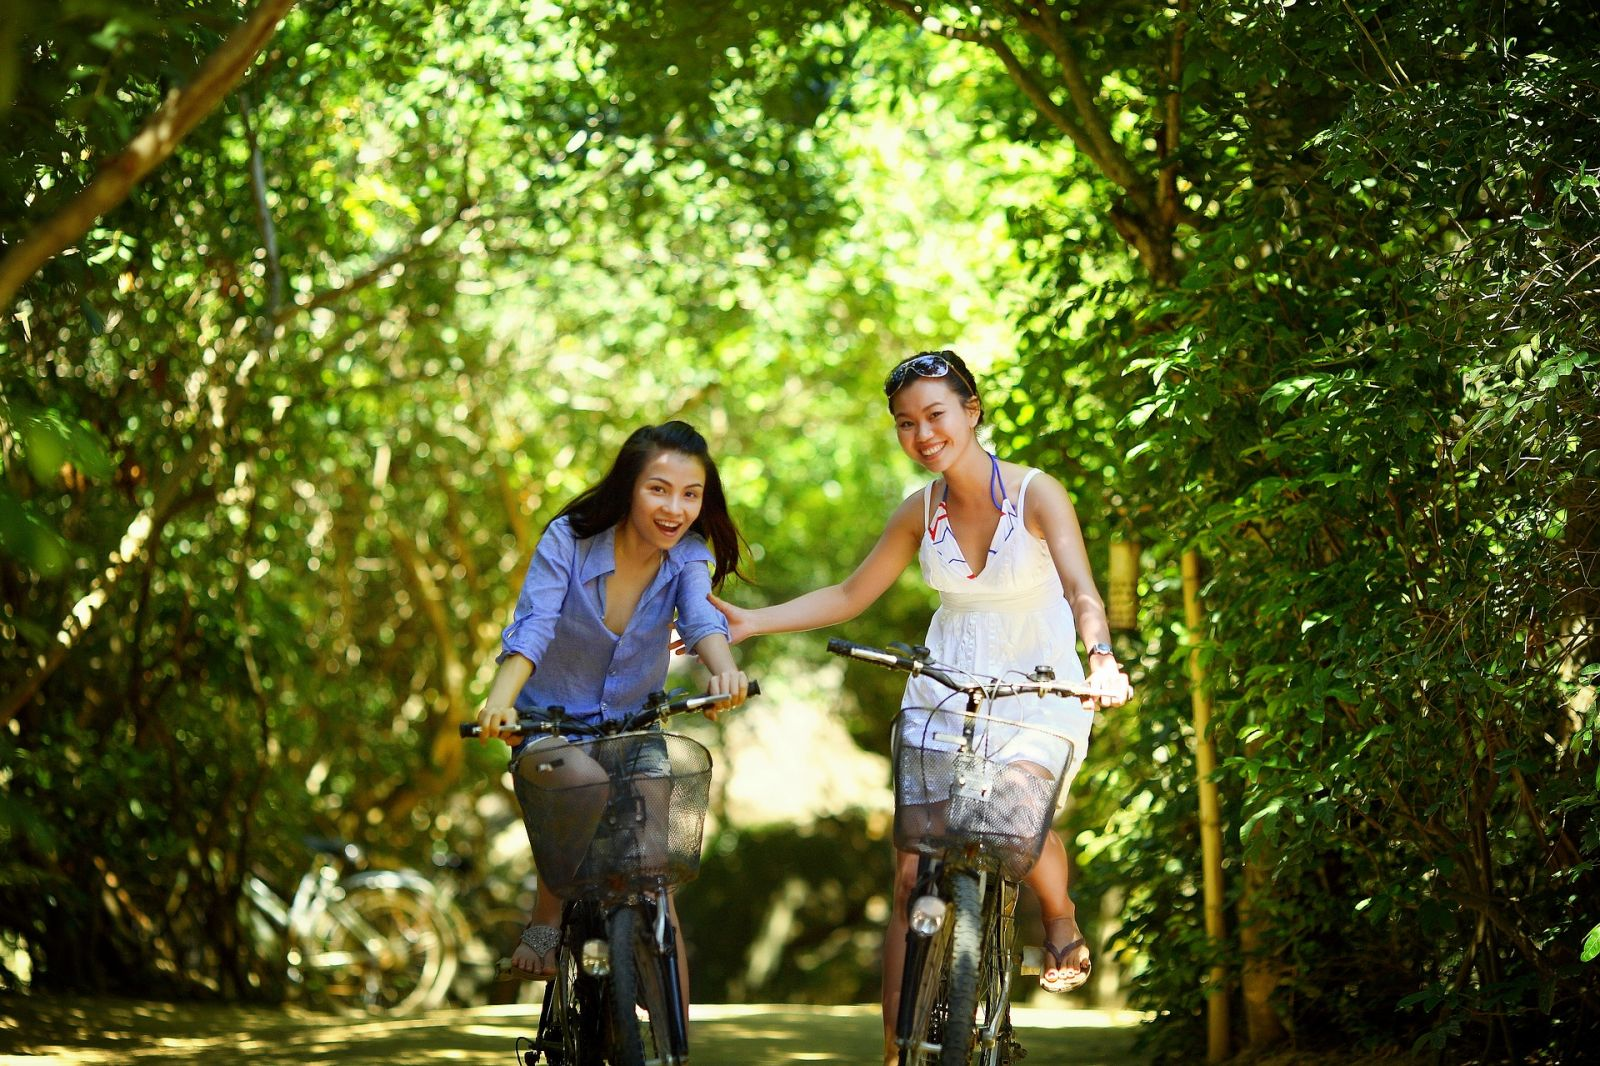 two women riding bikes